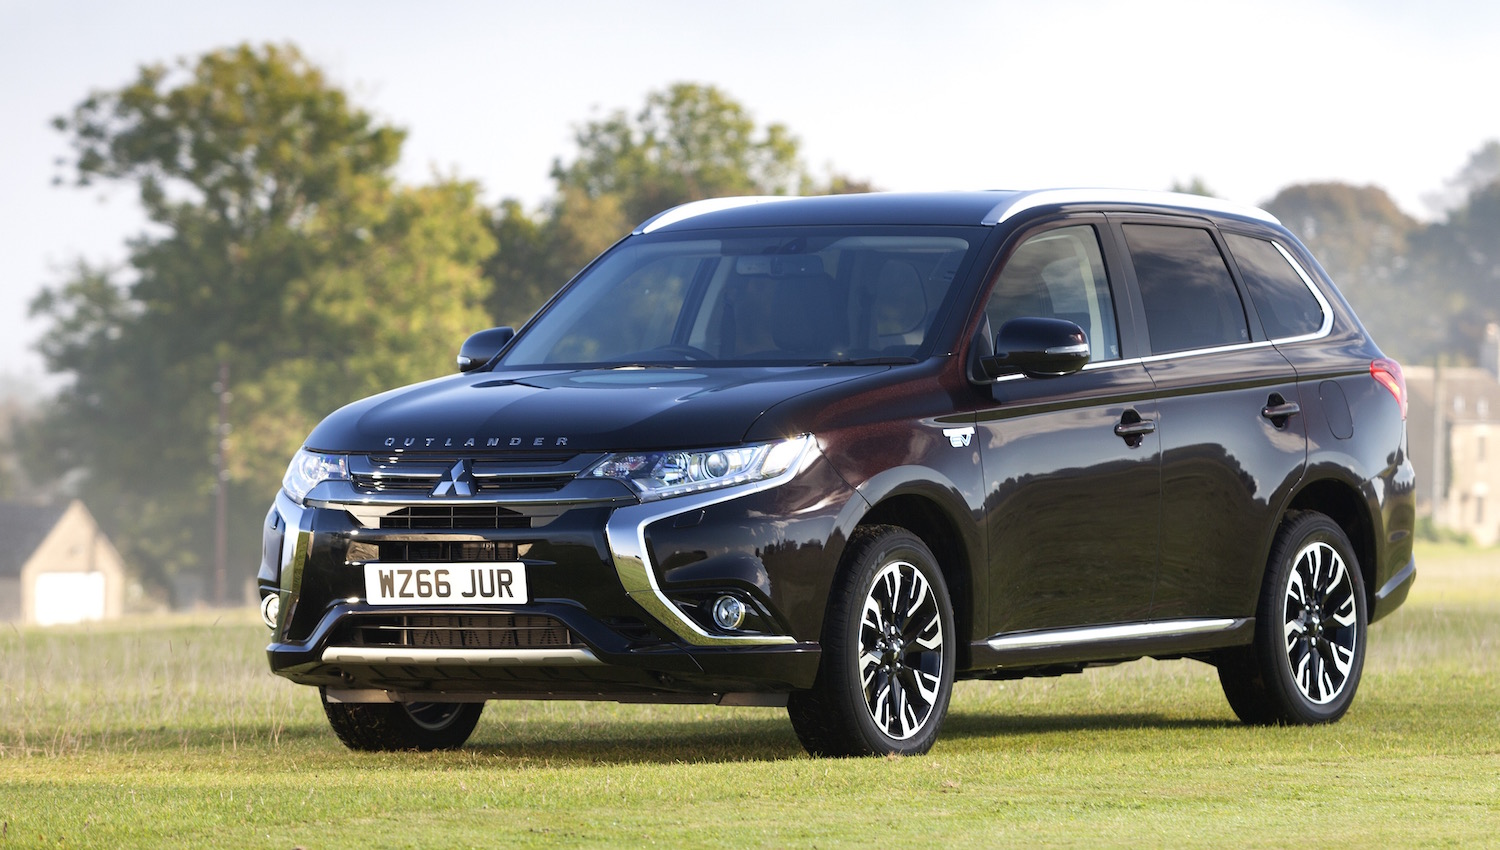 2016 Mitsubishi Outlander Uk New Car Release Date And